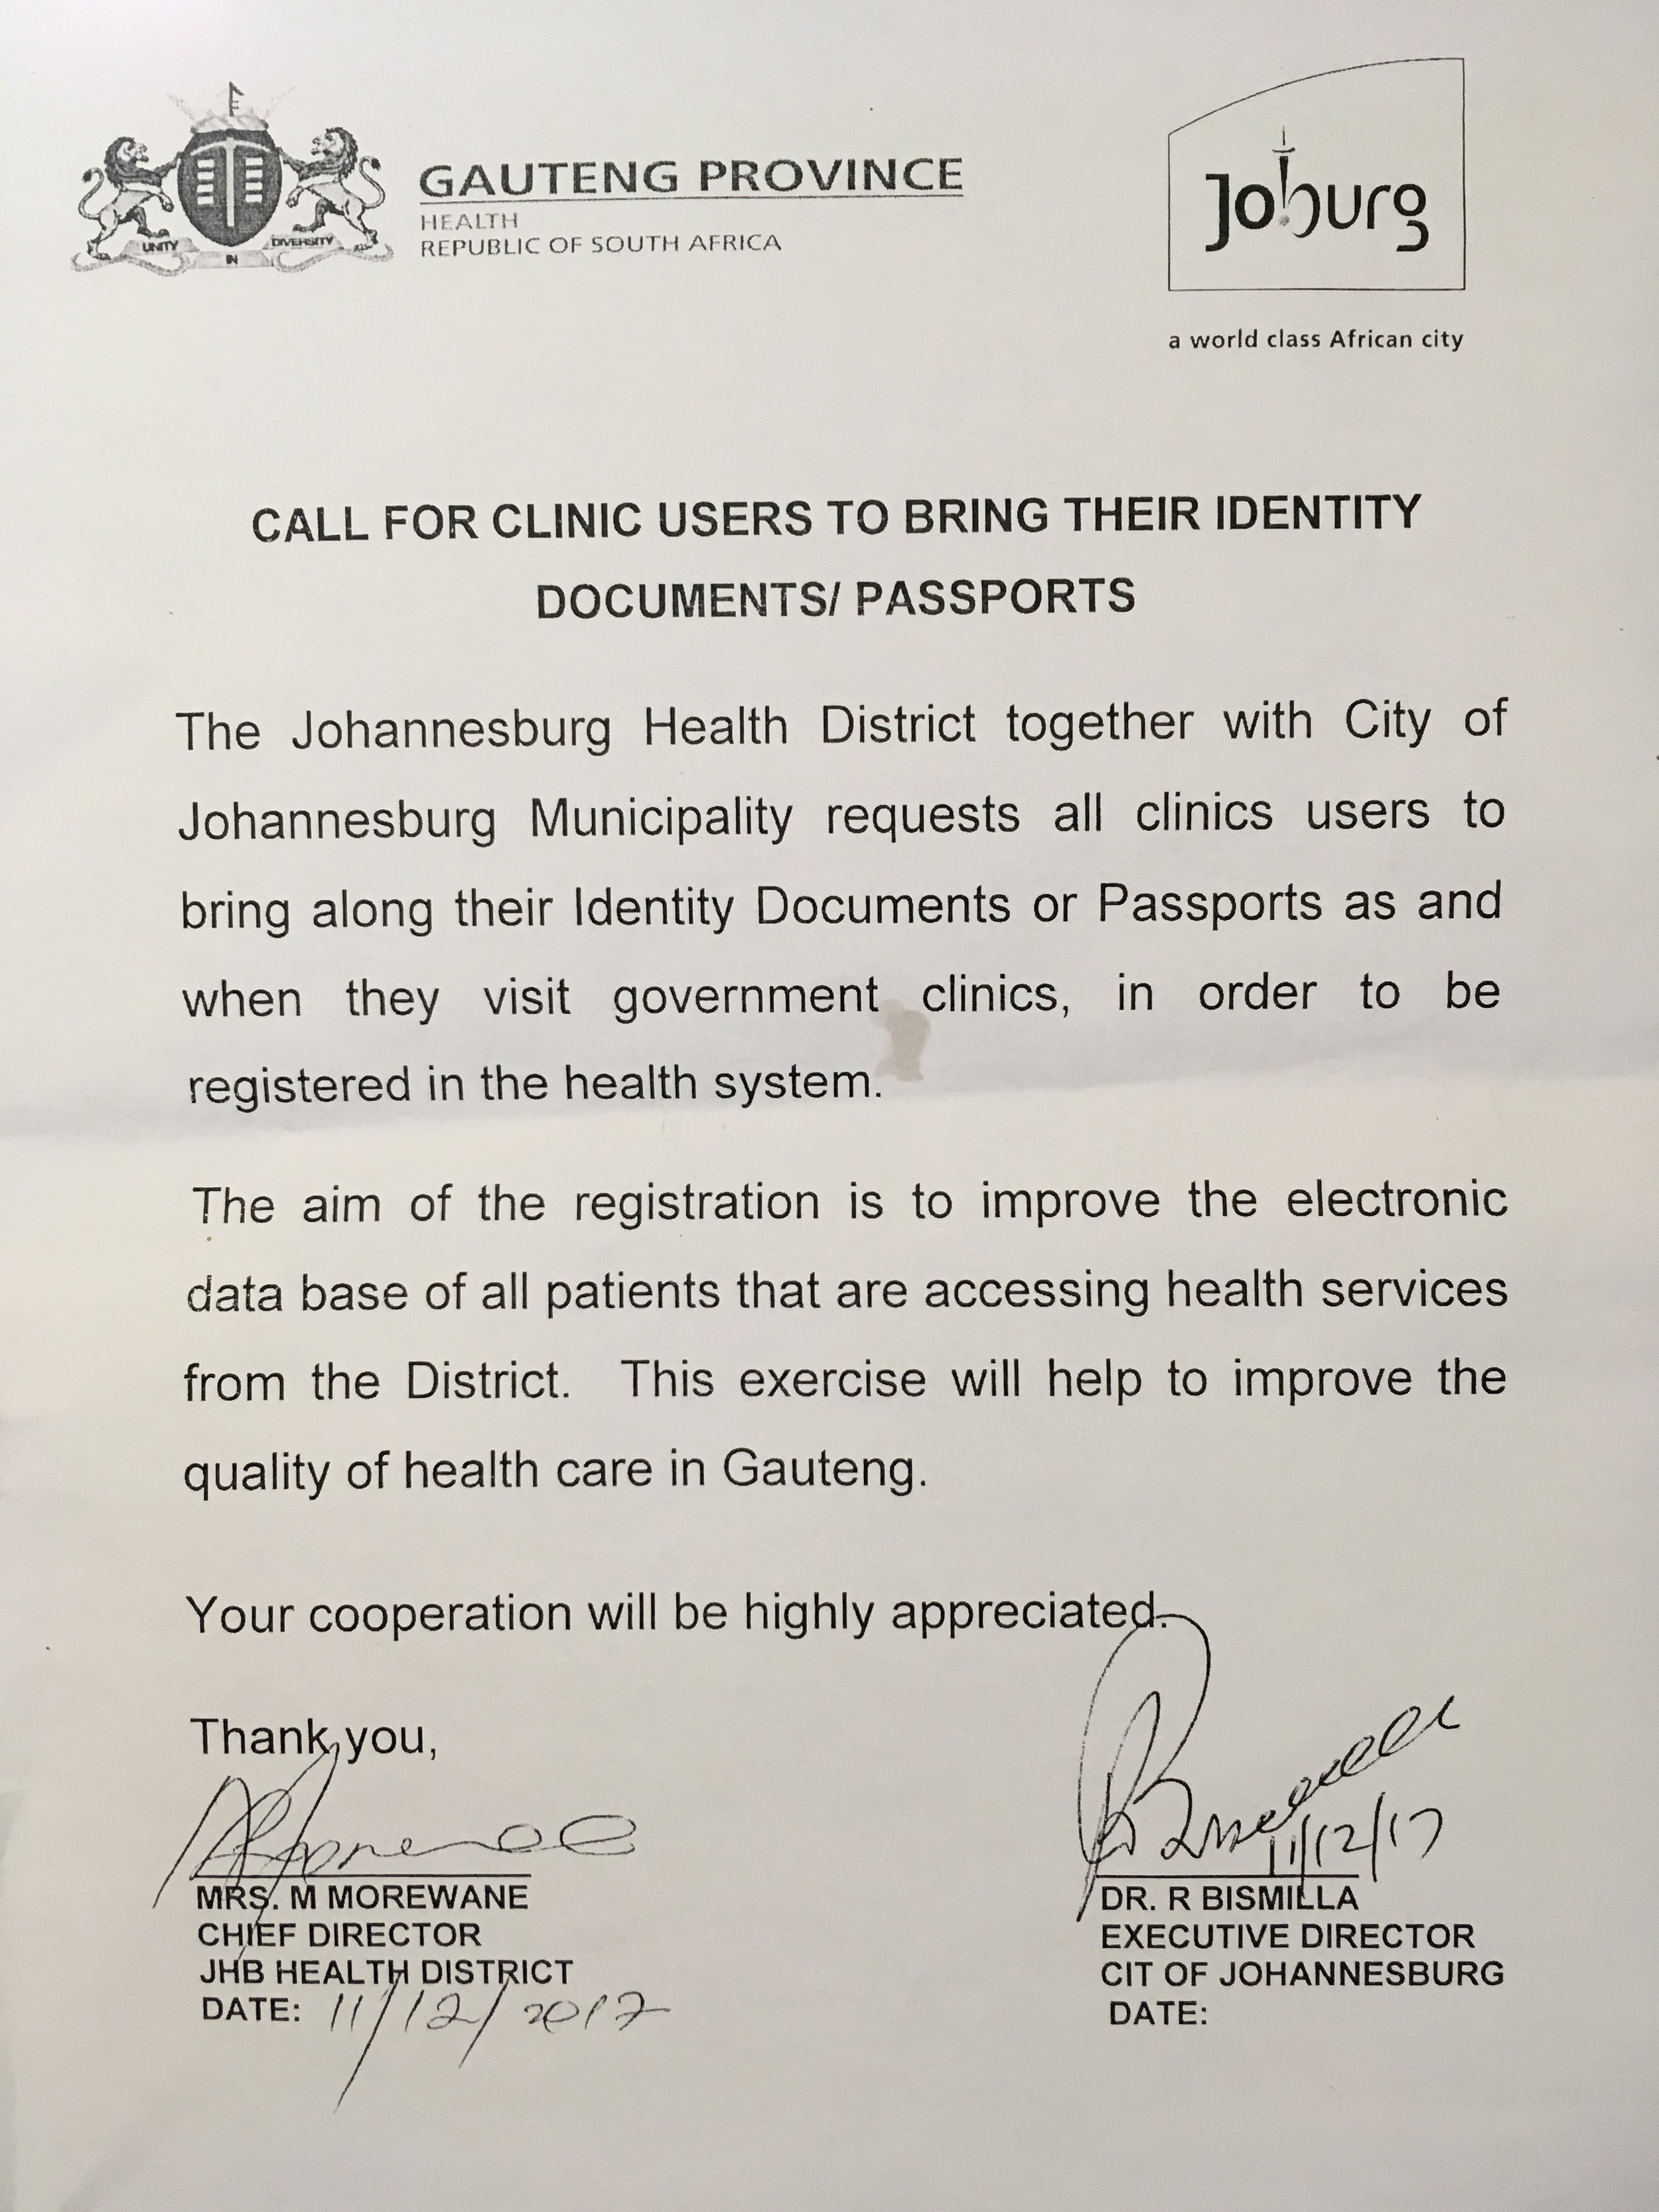 Call for clinic users to bring their ID document s.jpg